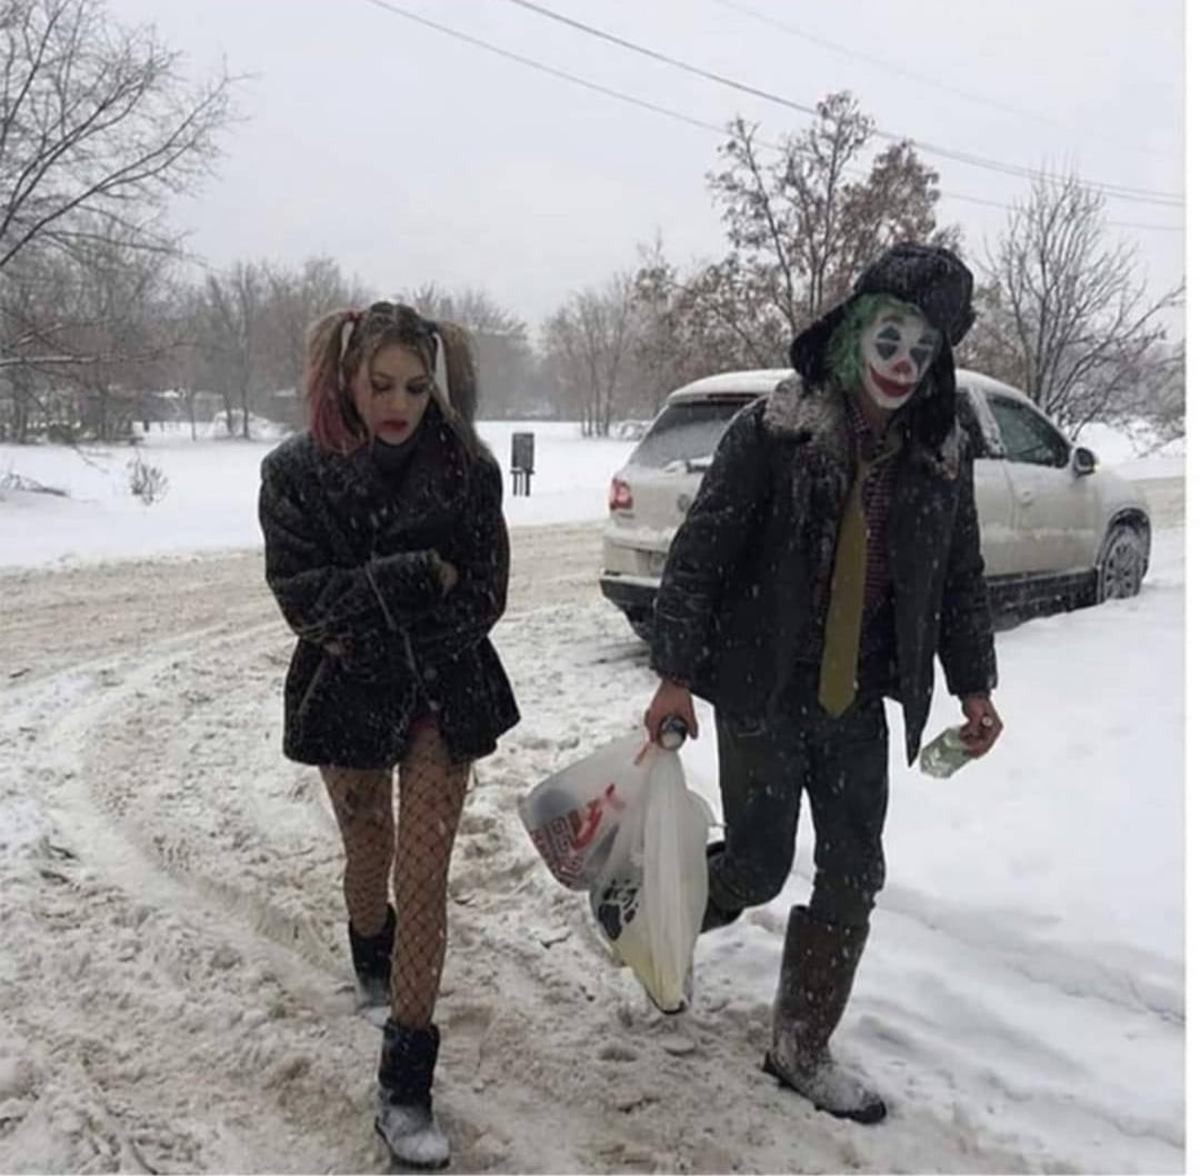 Joker and Harley Quinn after a week in Russia. .. I'd actually be down for a Phoenix-Joker version of Harley. The Joker sequel could actually be a psychological thriller about Quinzel's fall into madness, Phoen